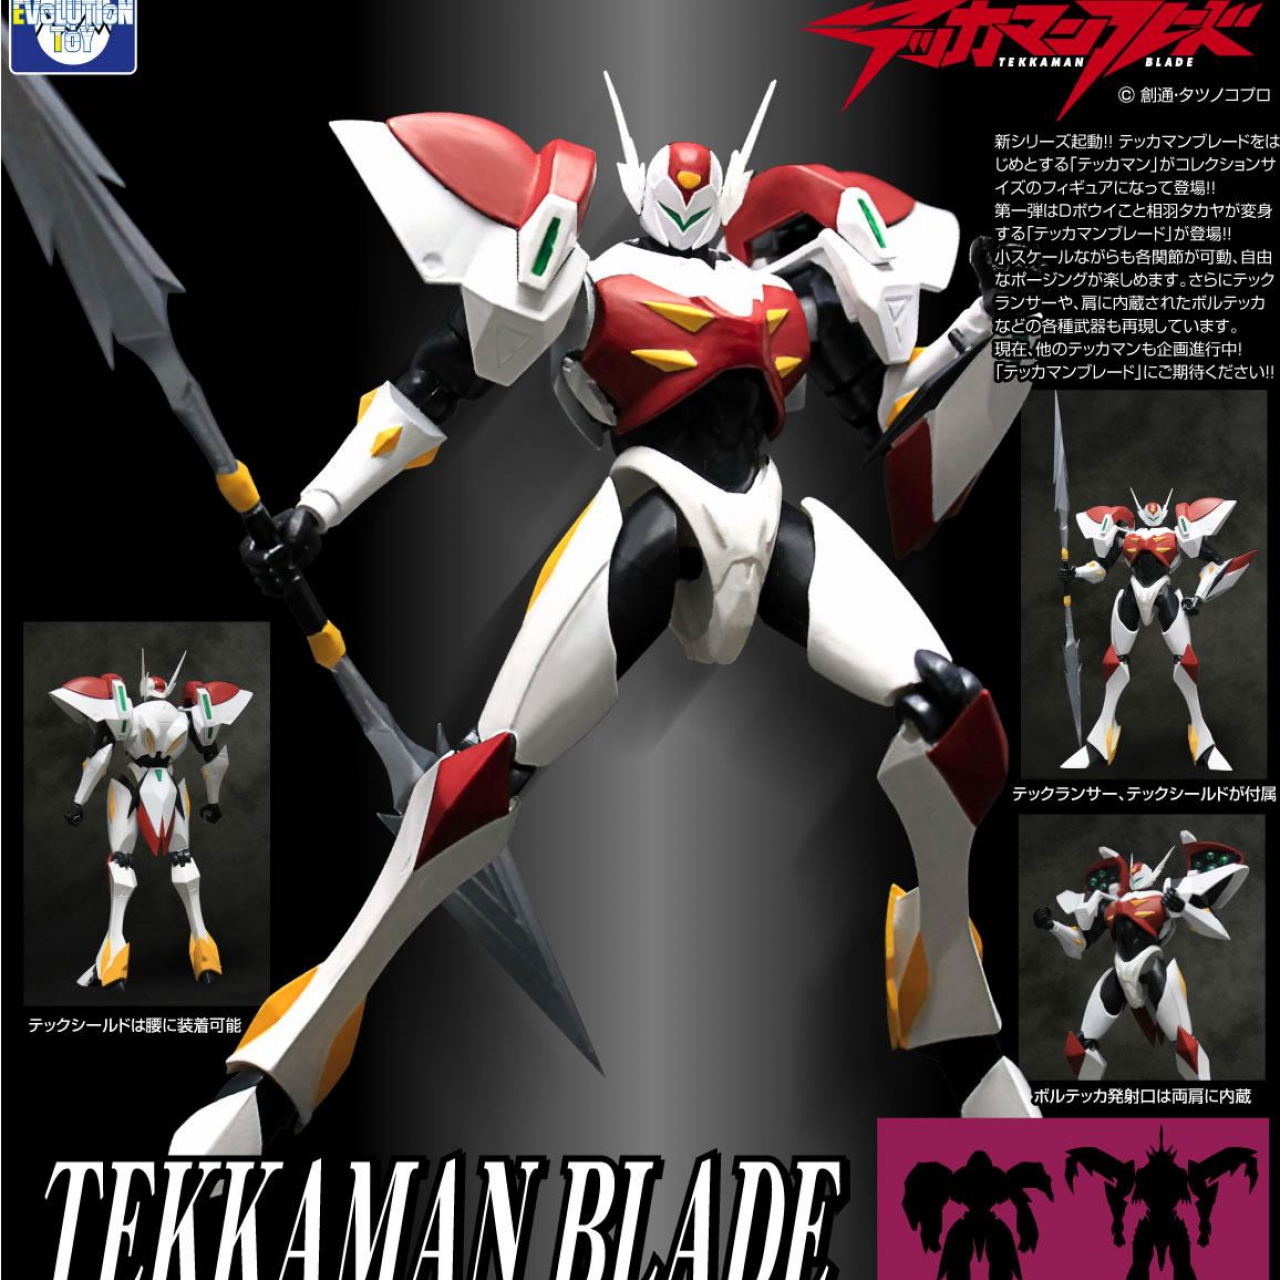 Great Mazinger Dynamite Action Action Figure Tekkaman Blade 12 cm